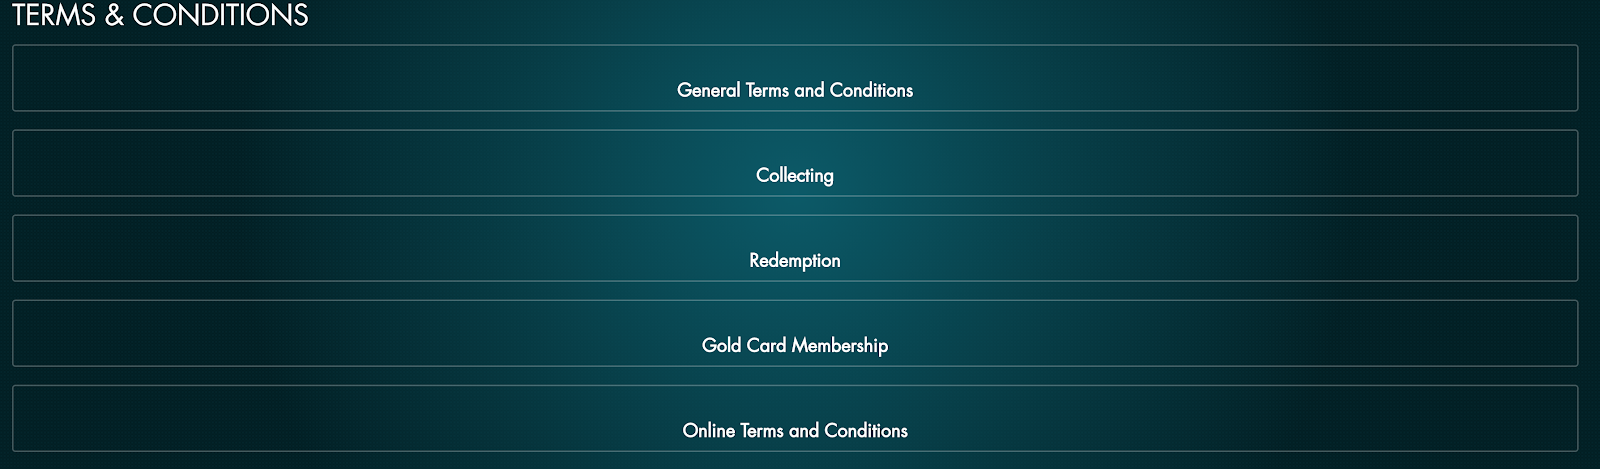 Check out the terms and conditions of the bonuses you get from Grosvenor Casinos before you sign up